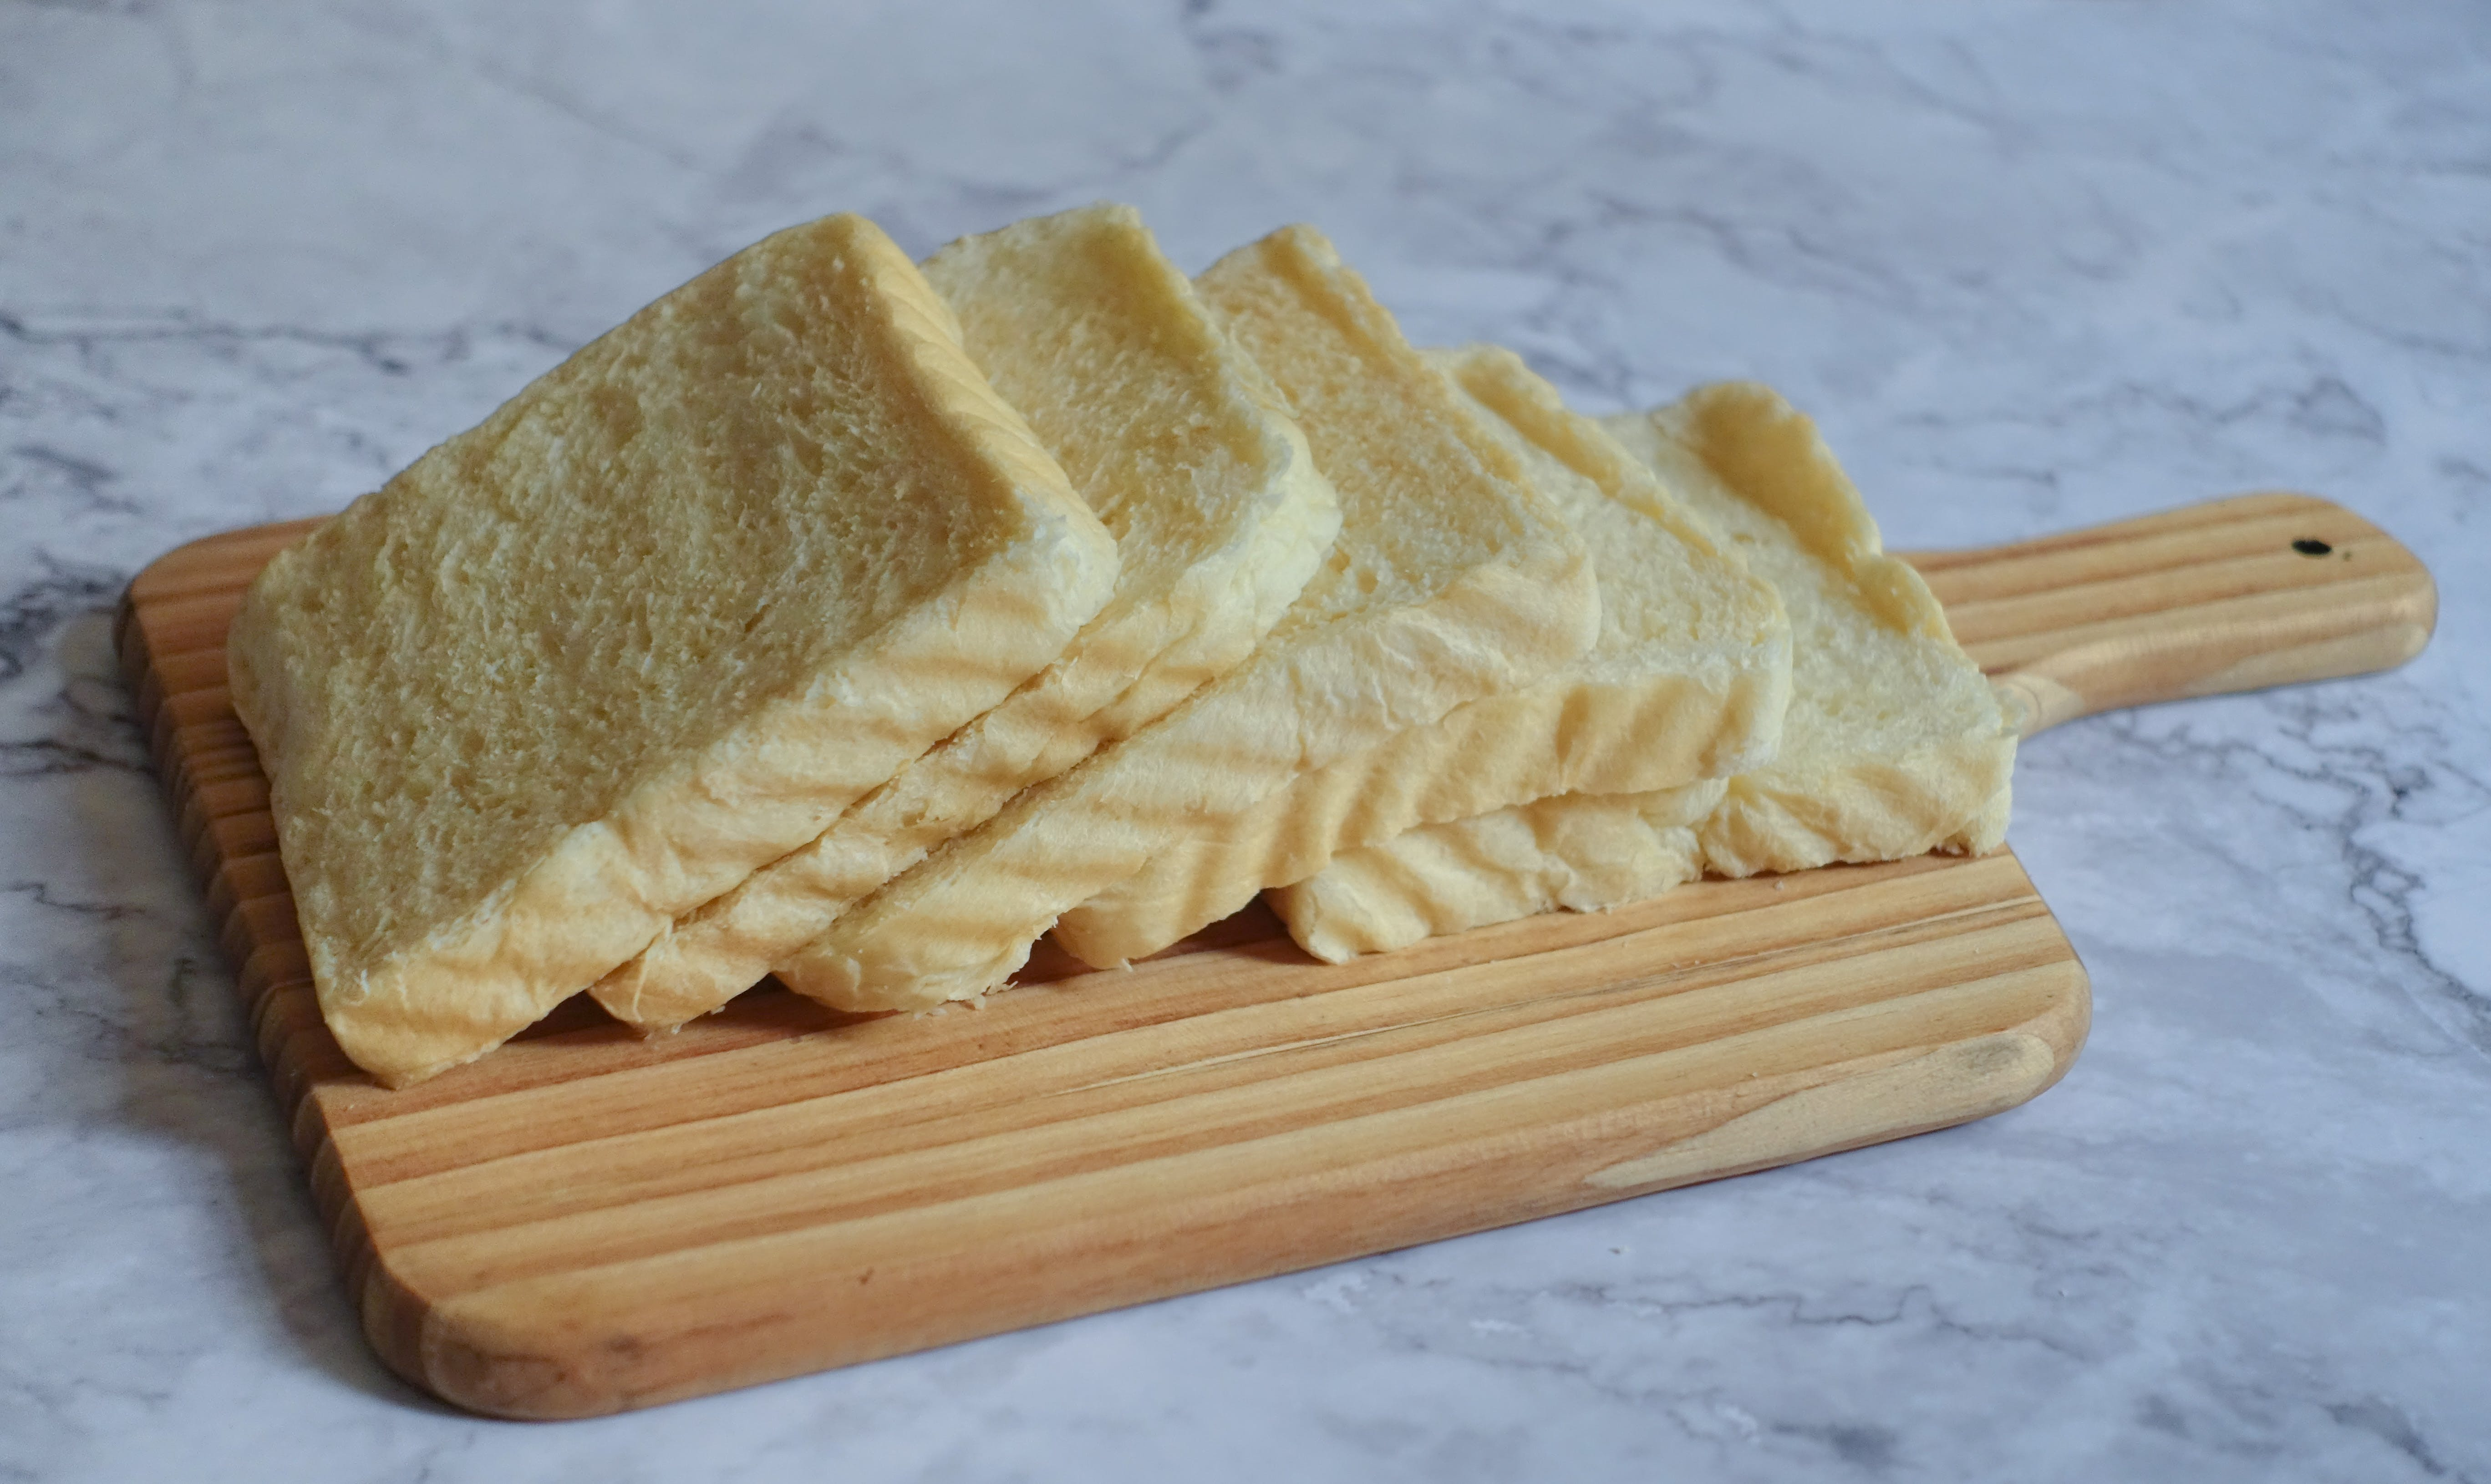 Photography of Sliced Bread on Chopping Board